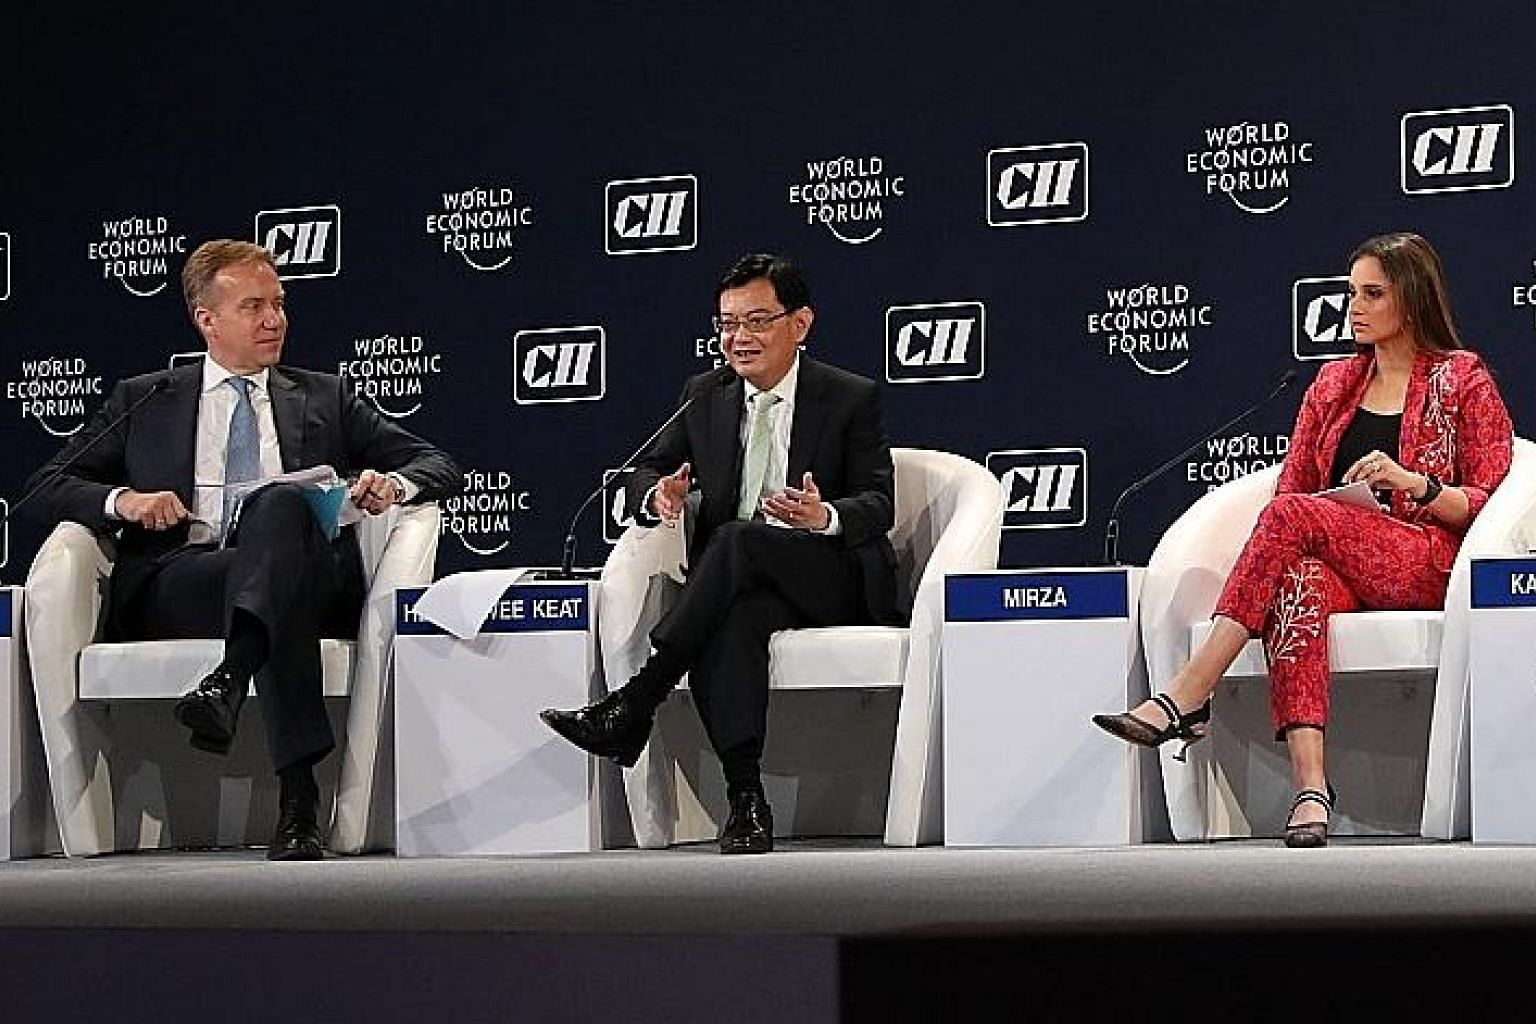 (From left) World Economic Forum president Borge Brende, Deputy Prime Minister Heng Swee Keat and United Nations Women Goodwill Ambassador for South Asia Sania Mirza at the India Economic Summit in New Delhi. PHOTO: MFA